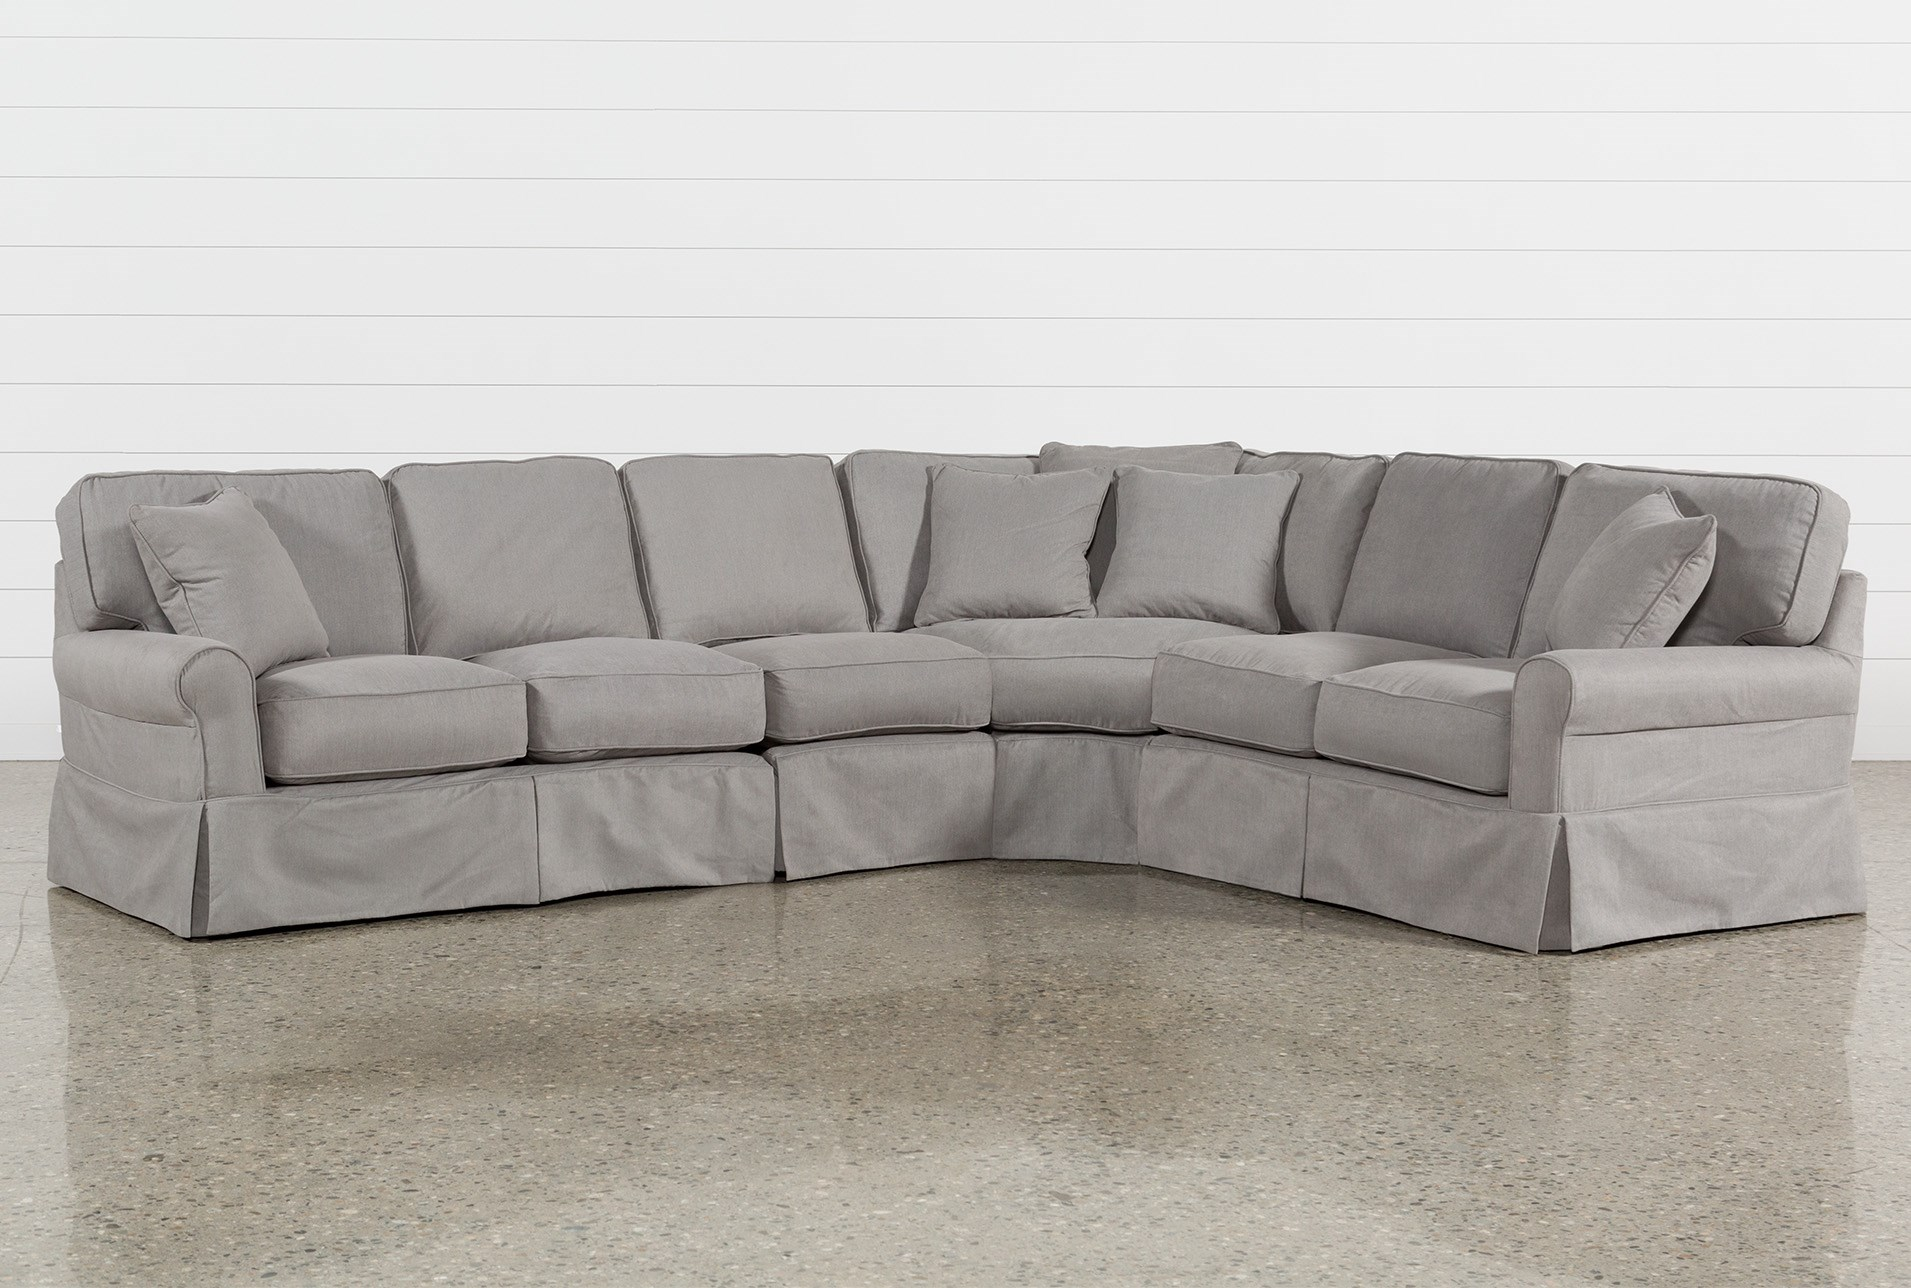 Carlyle Slipcovered 4 Piece Sectional Qty 1 Has Been Successfully Added To Your Cart